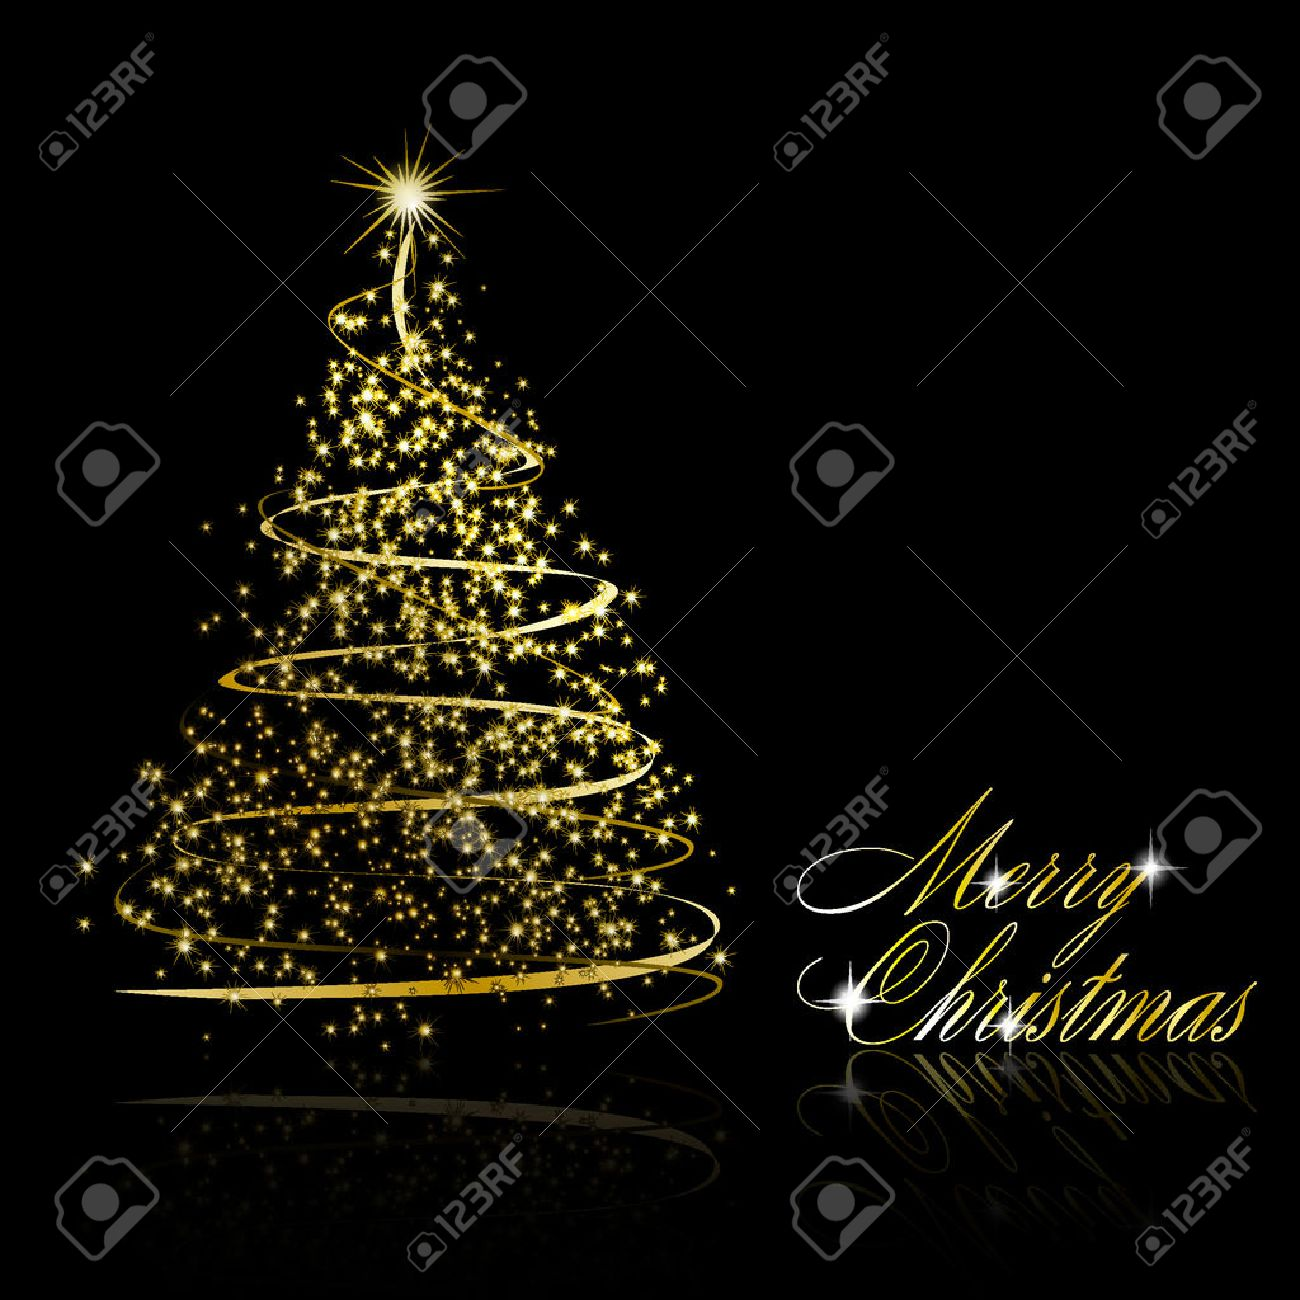 Abstract Golden Christmas Tree On Black Background Illustration